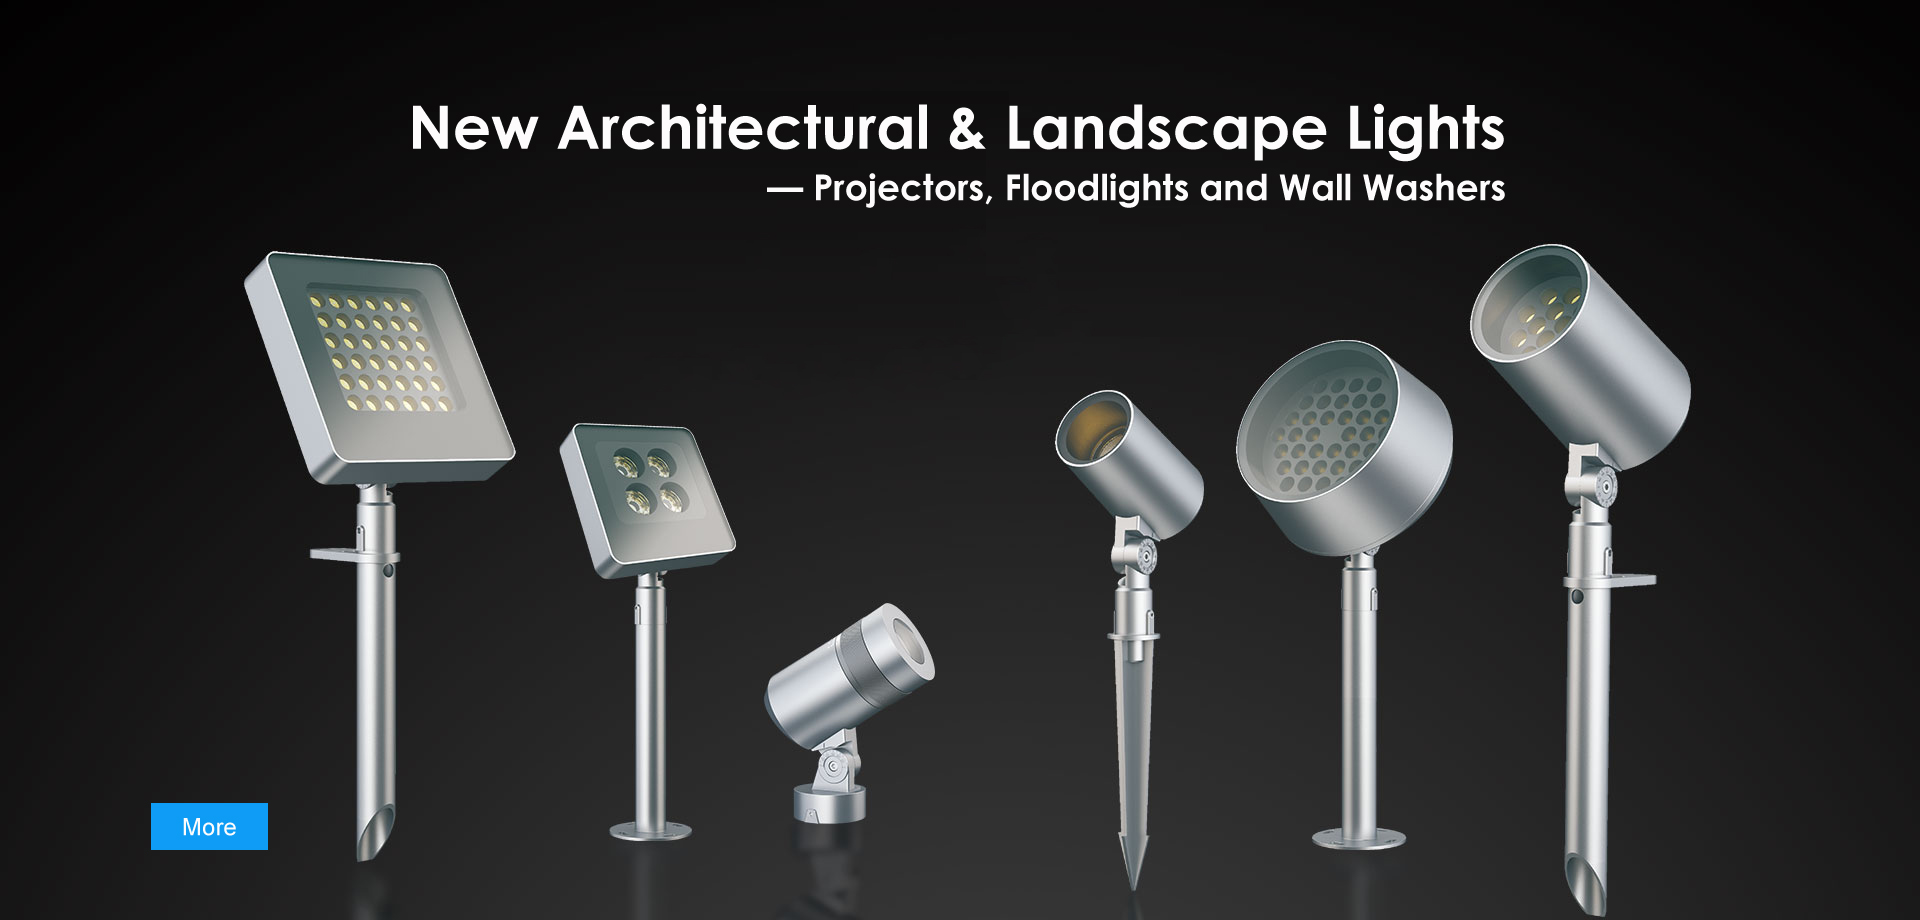 B3Q series CREE LED Architectural Flood Wall Washer family products